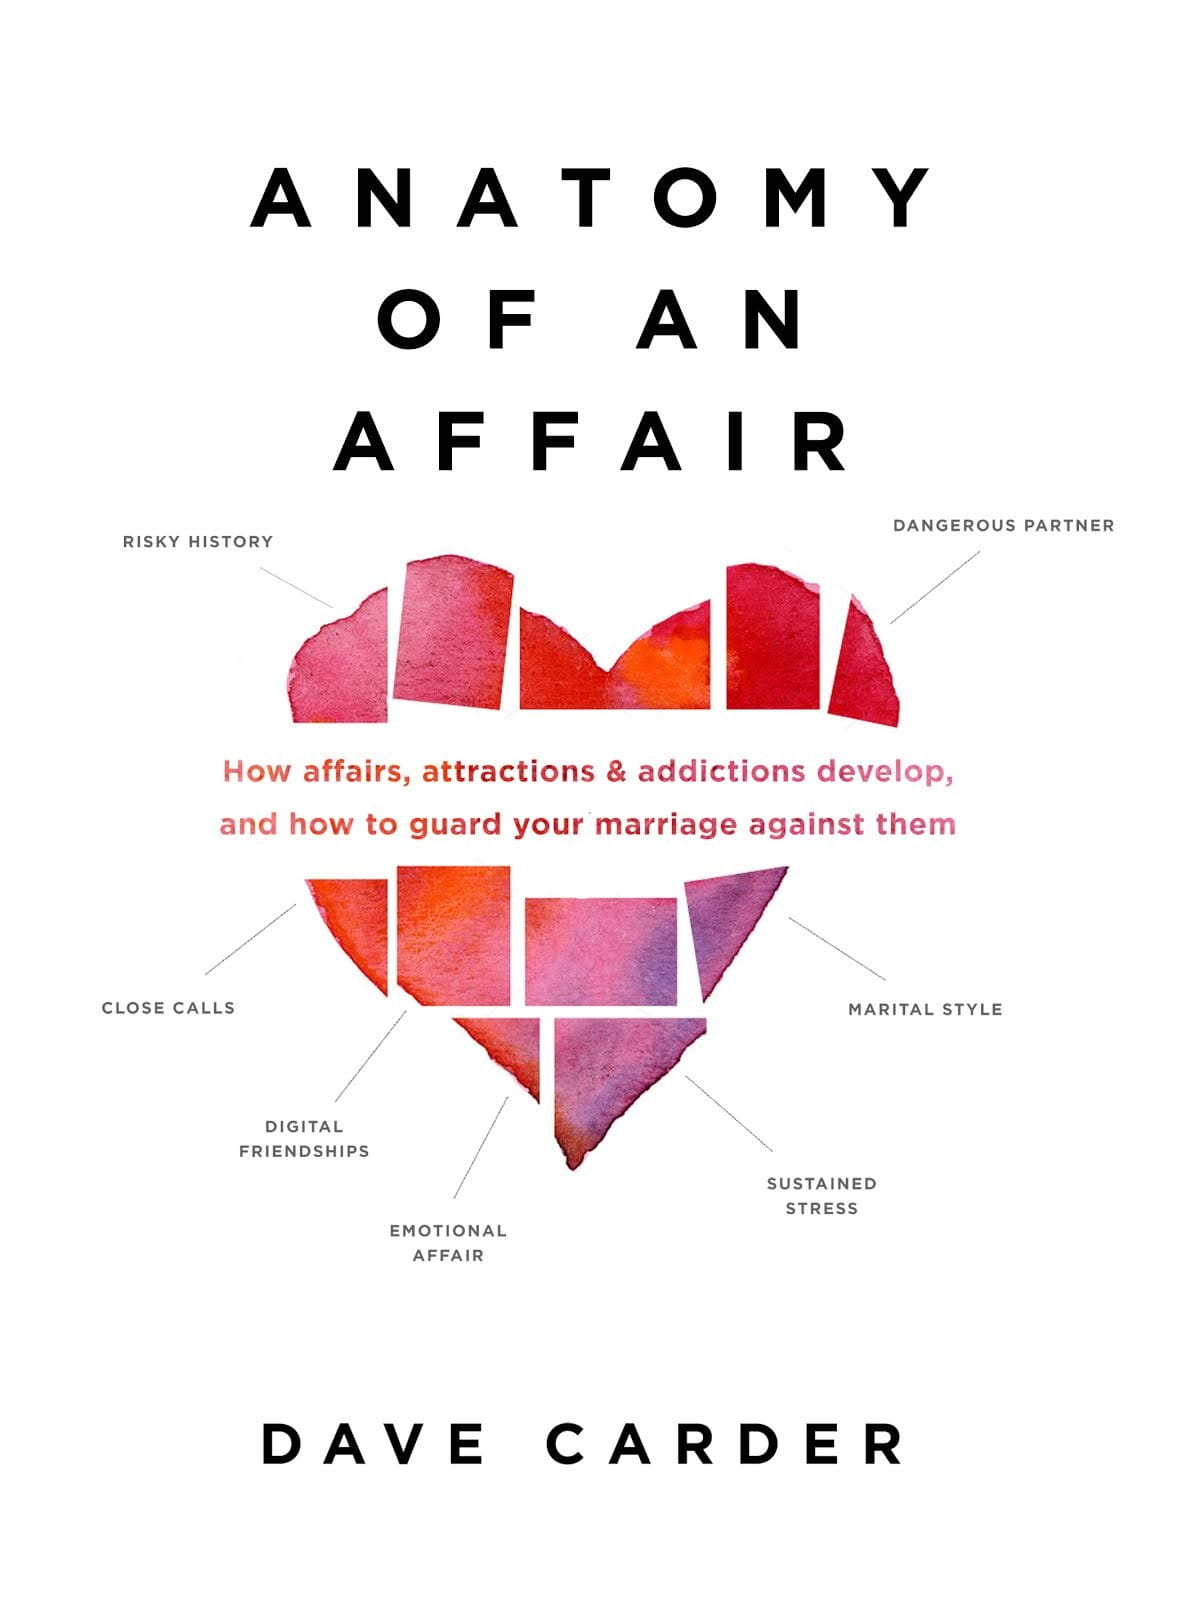 Anatomy of an Affair: What Are the 4 Phases of a Close Call